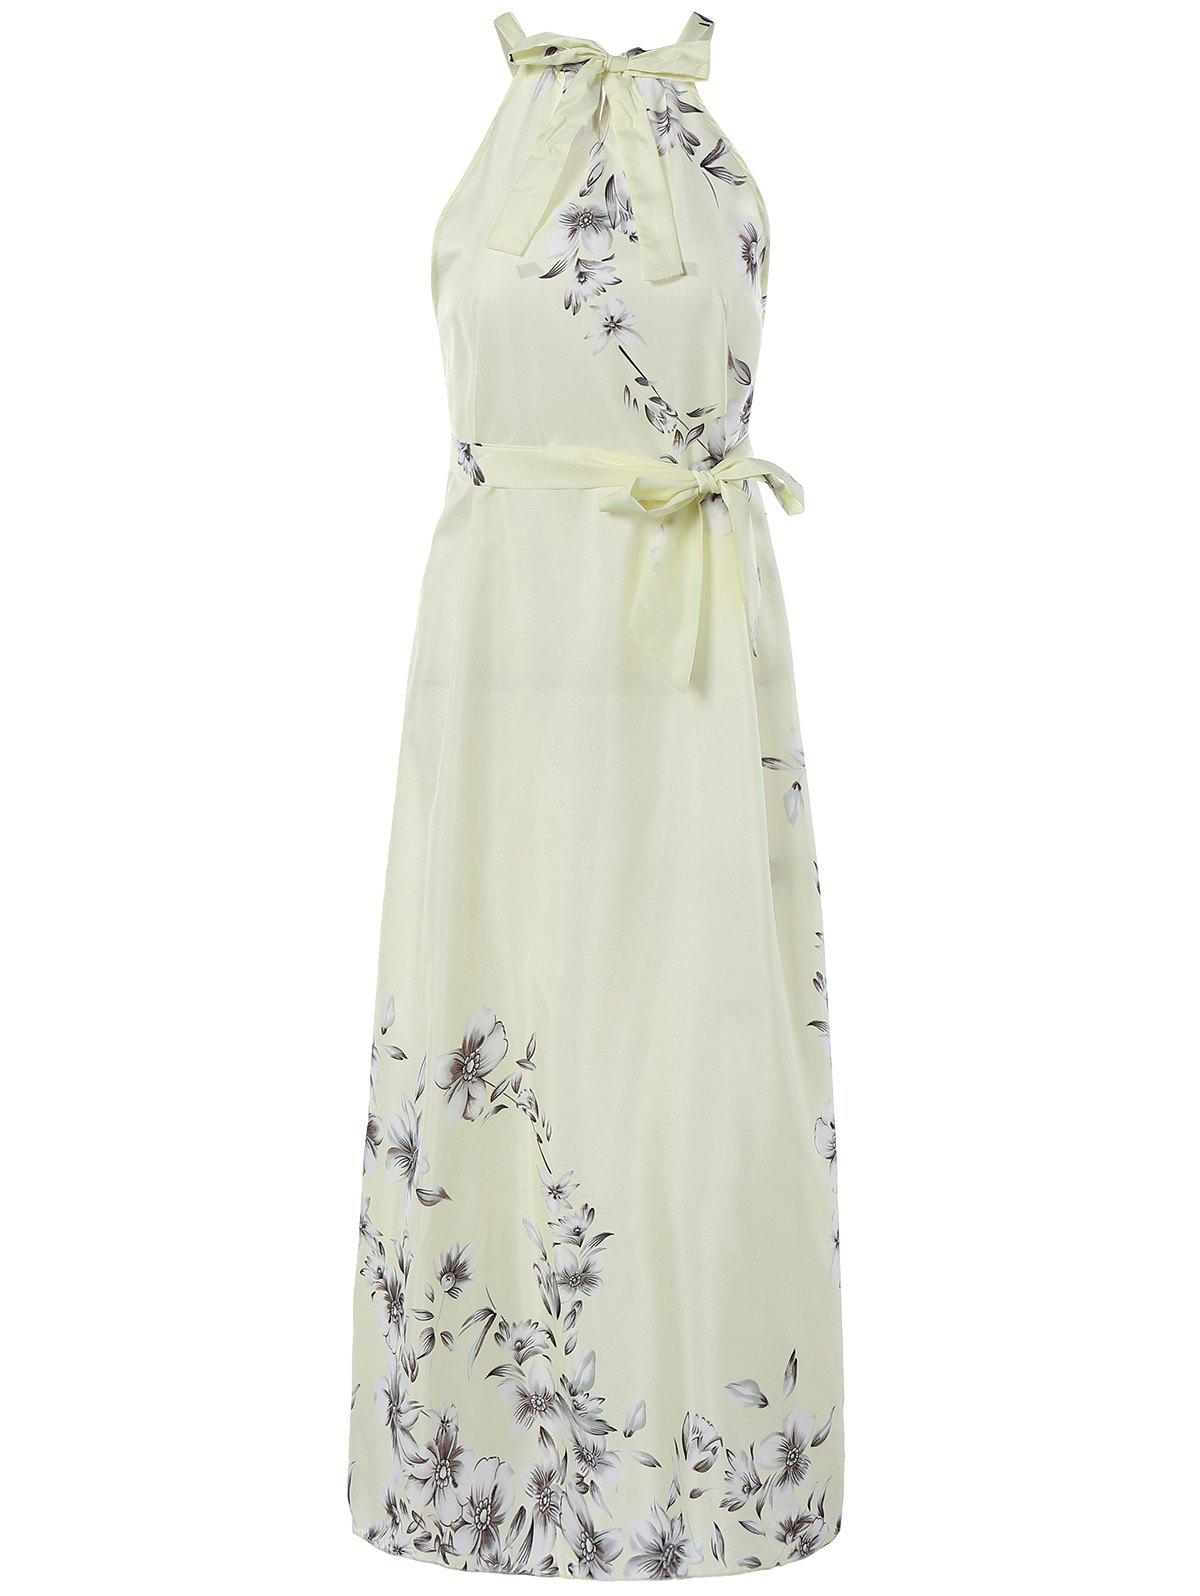 Sweet Sleeveless Floral Tied Dress For Women